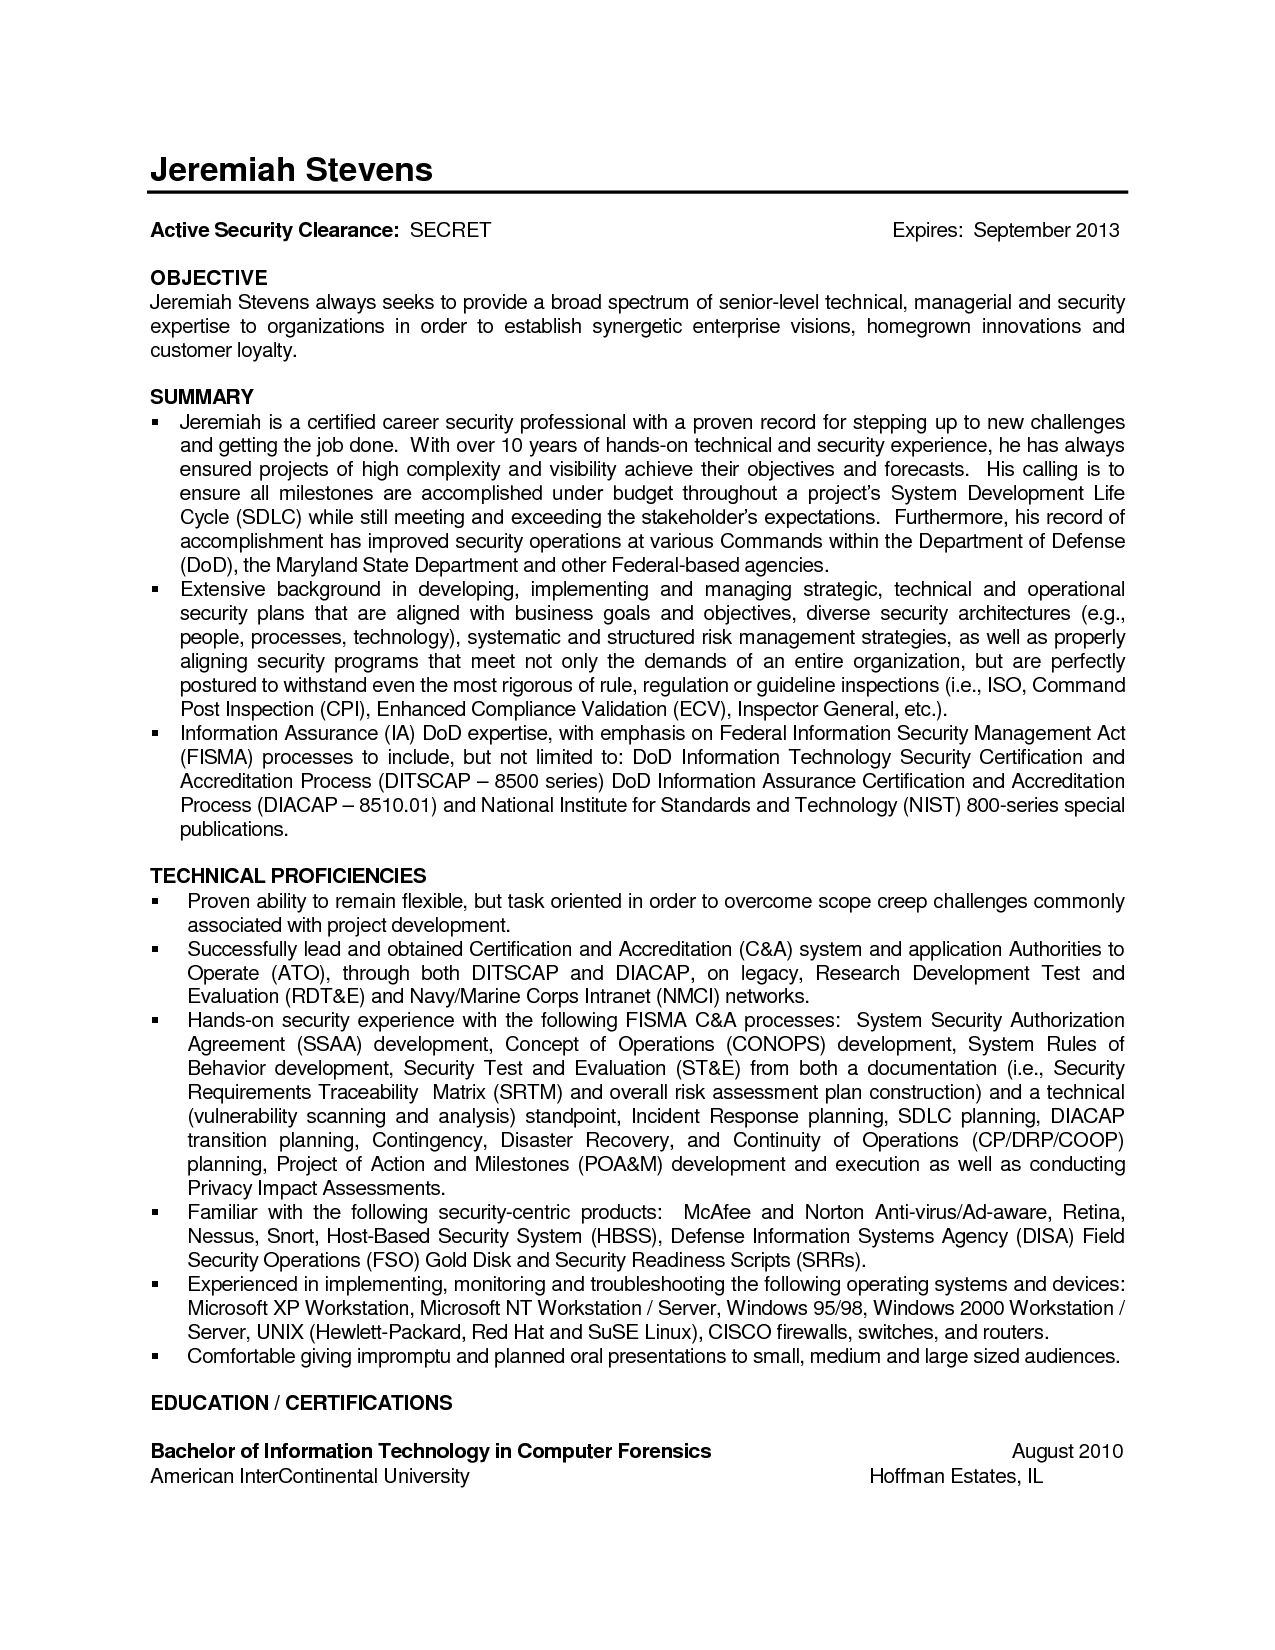 information technology resume for federal job | Federal Resume ...